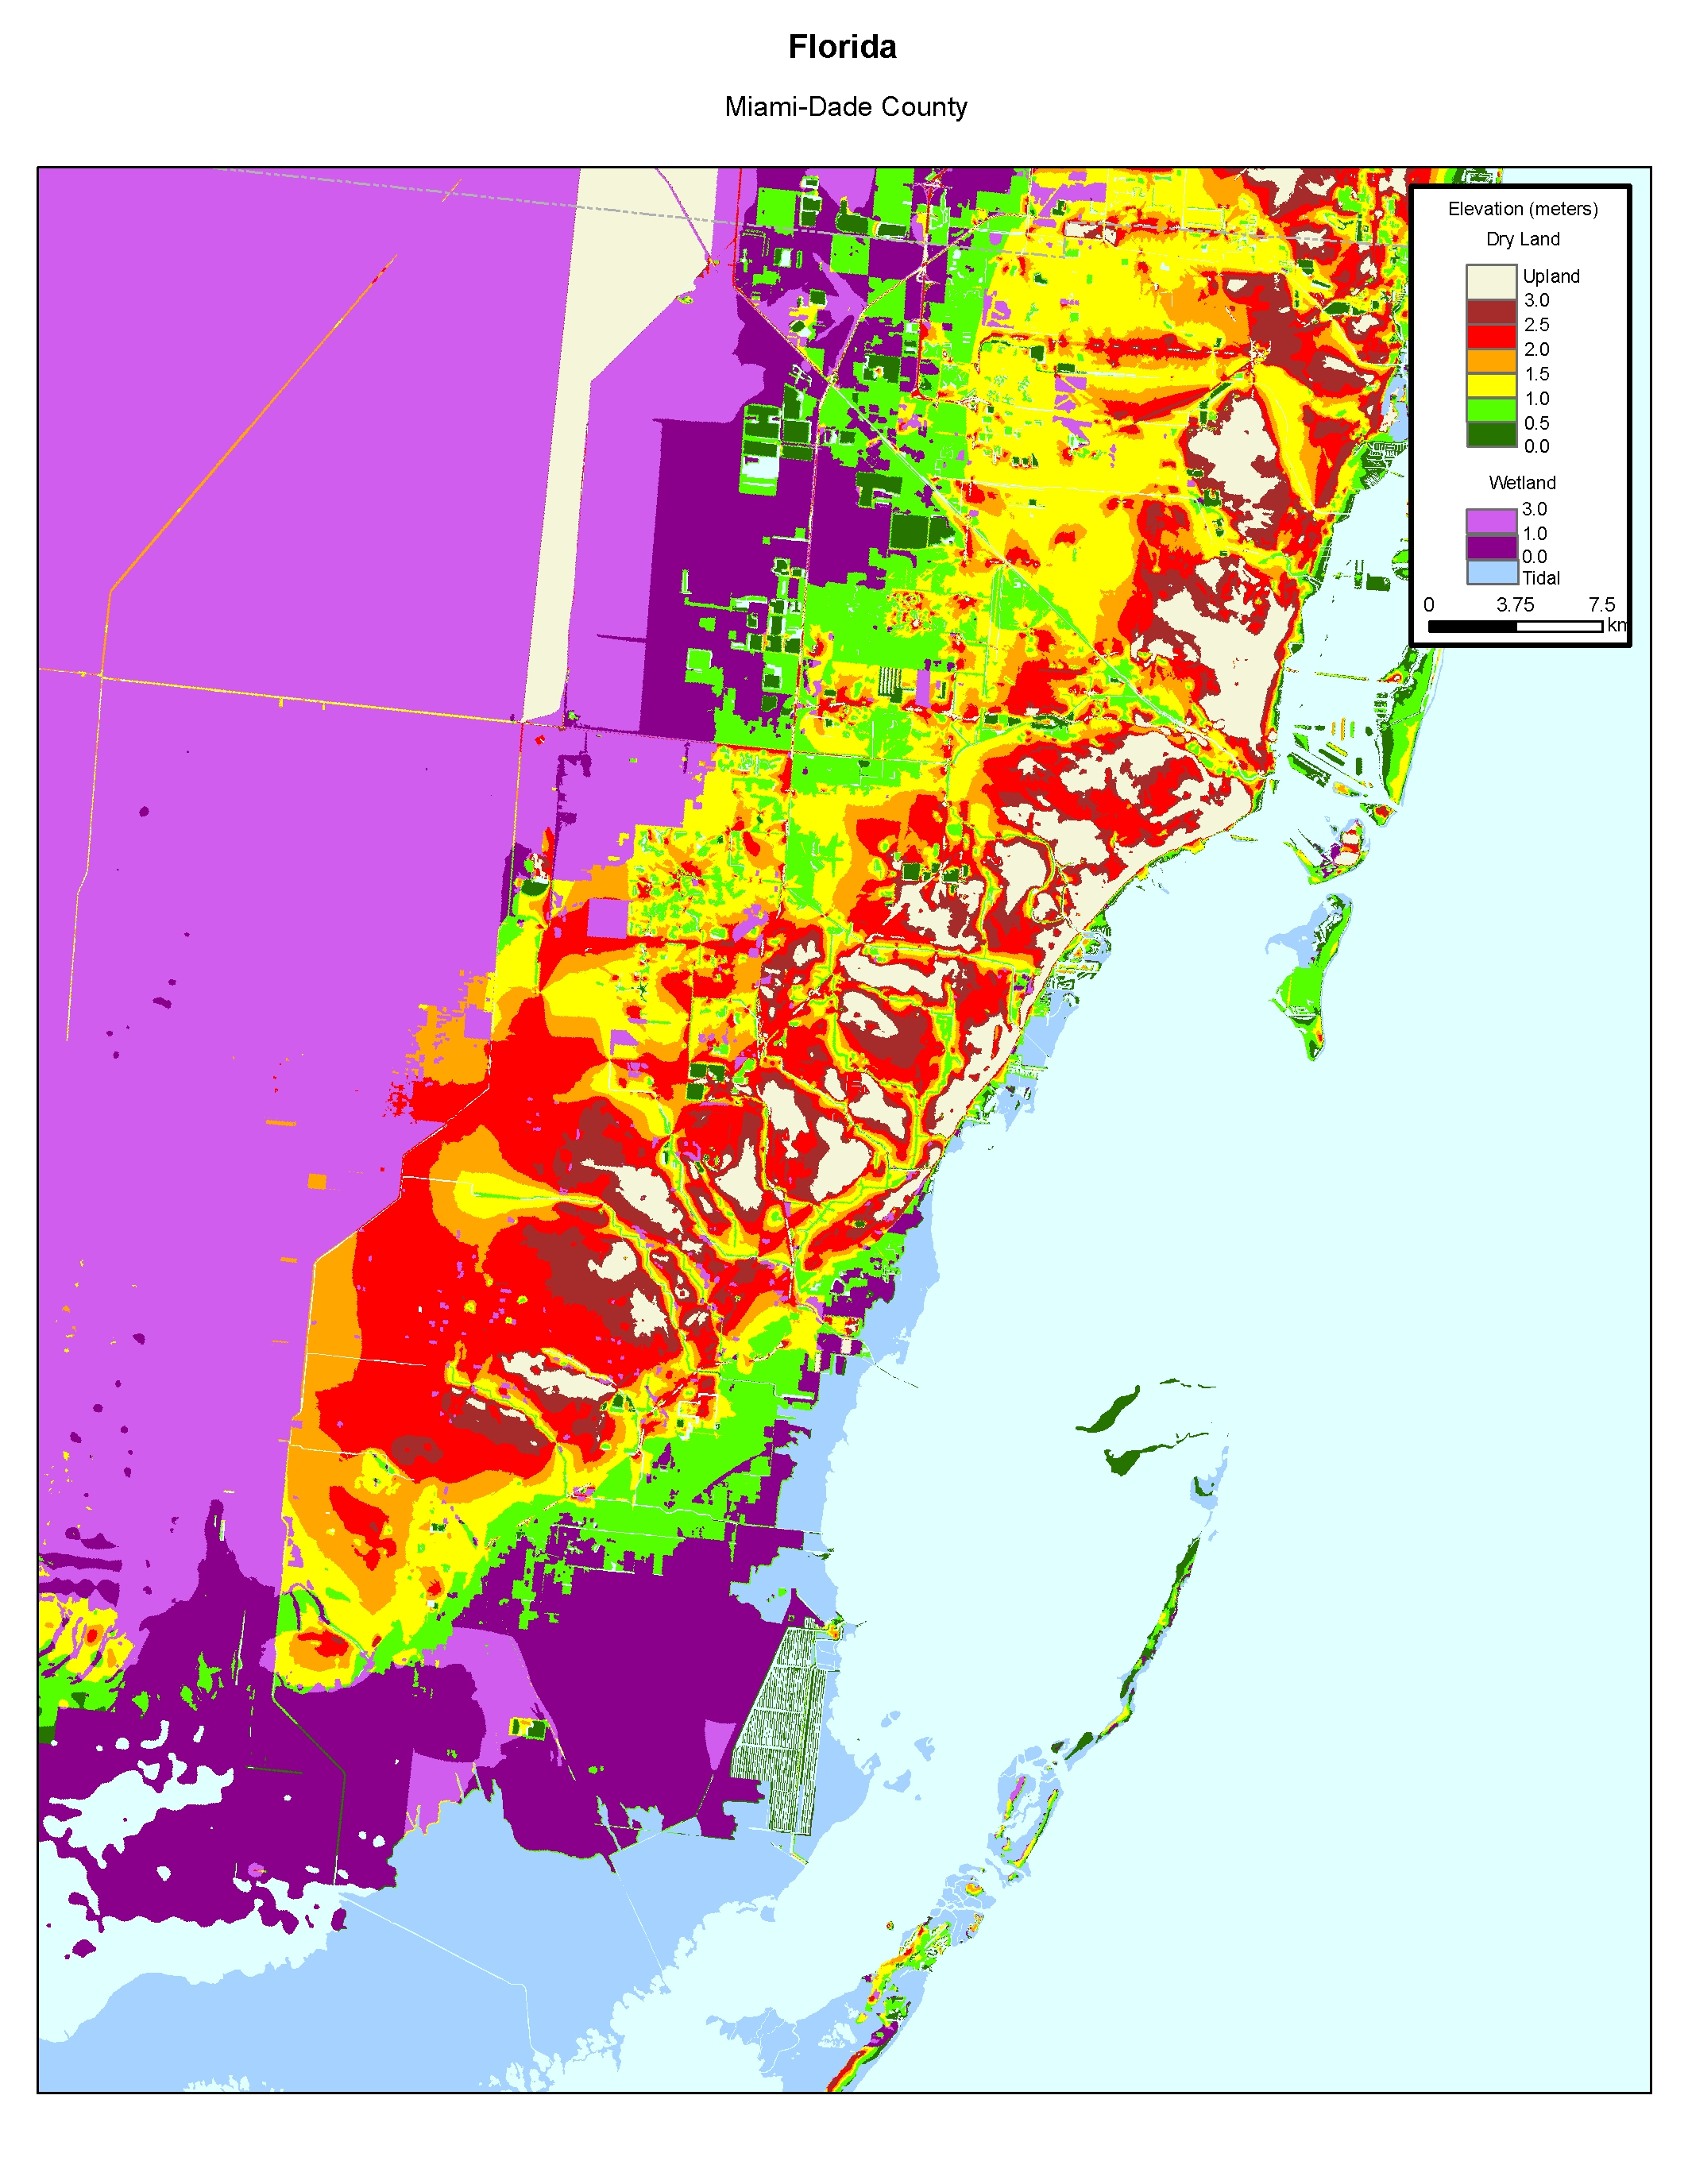 More Sea Level Rise Maps Of Florida's Atlantic Coast - Florida Wetlands Map